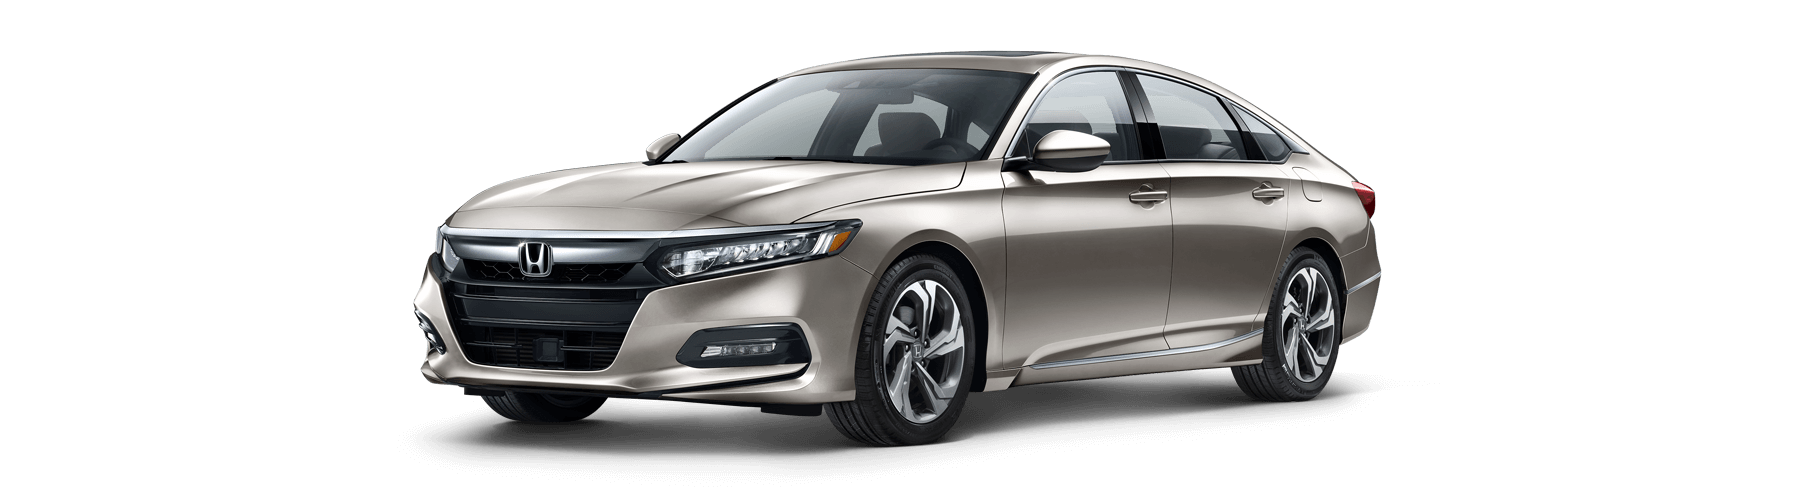 2018 Honda Accord Sedan Front Angle